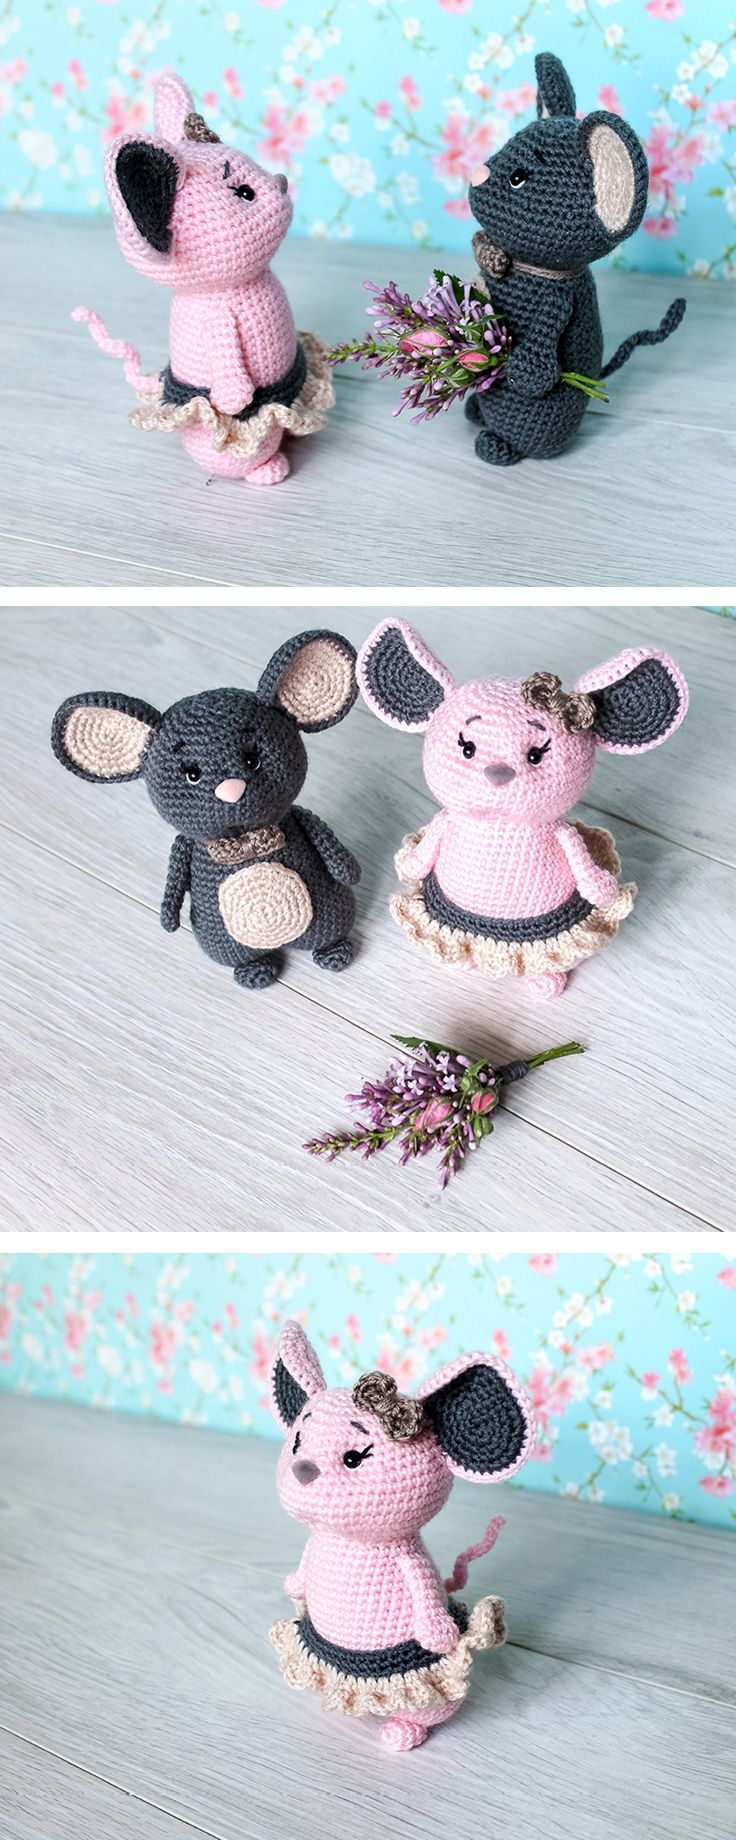 Crochet these mice using our free pattern. Make your day joyful with this sweet romantic mouse couple! It will be a cute gift, decoration or accessory for wedding or anniversary.